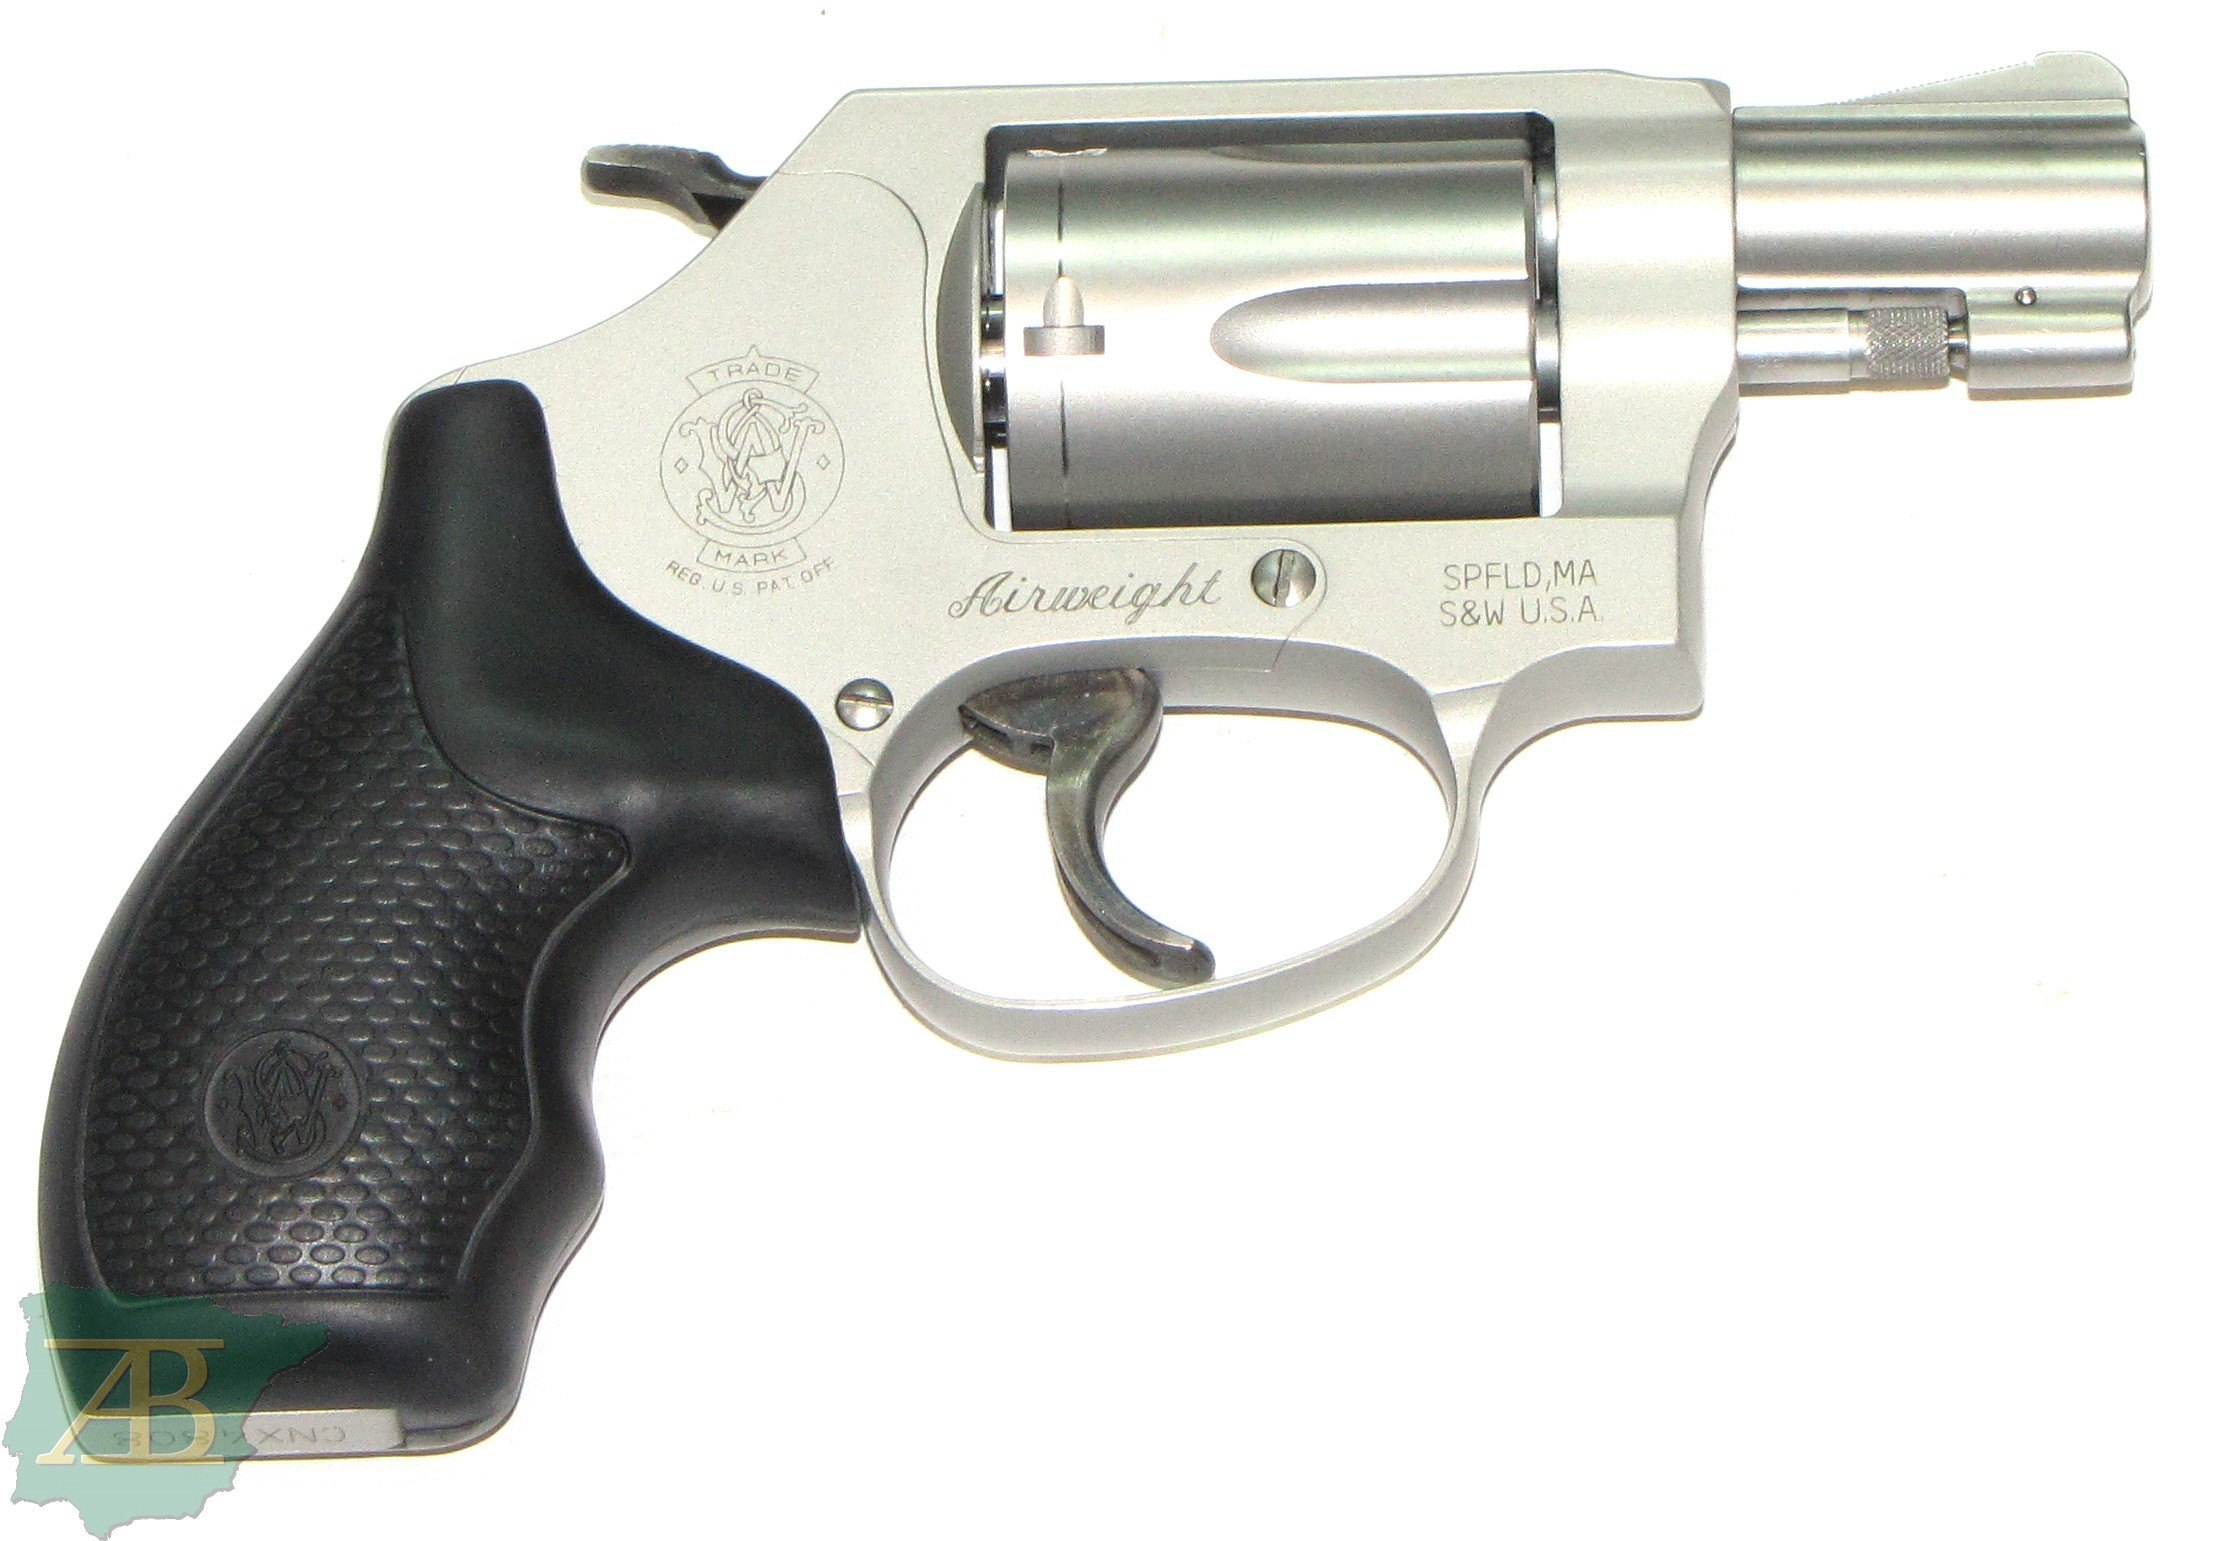 REVÓLVER SMITH & WESSON .38 SPECIAL Ref. REP2019/354